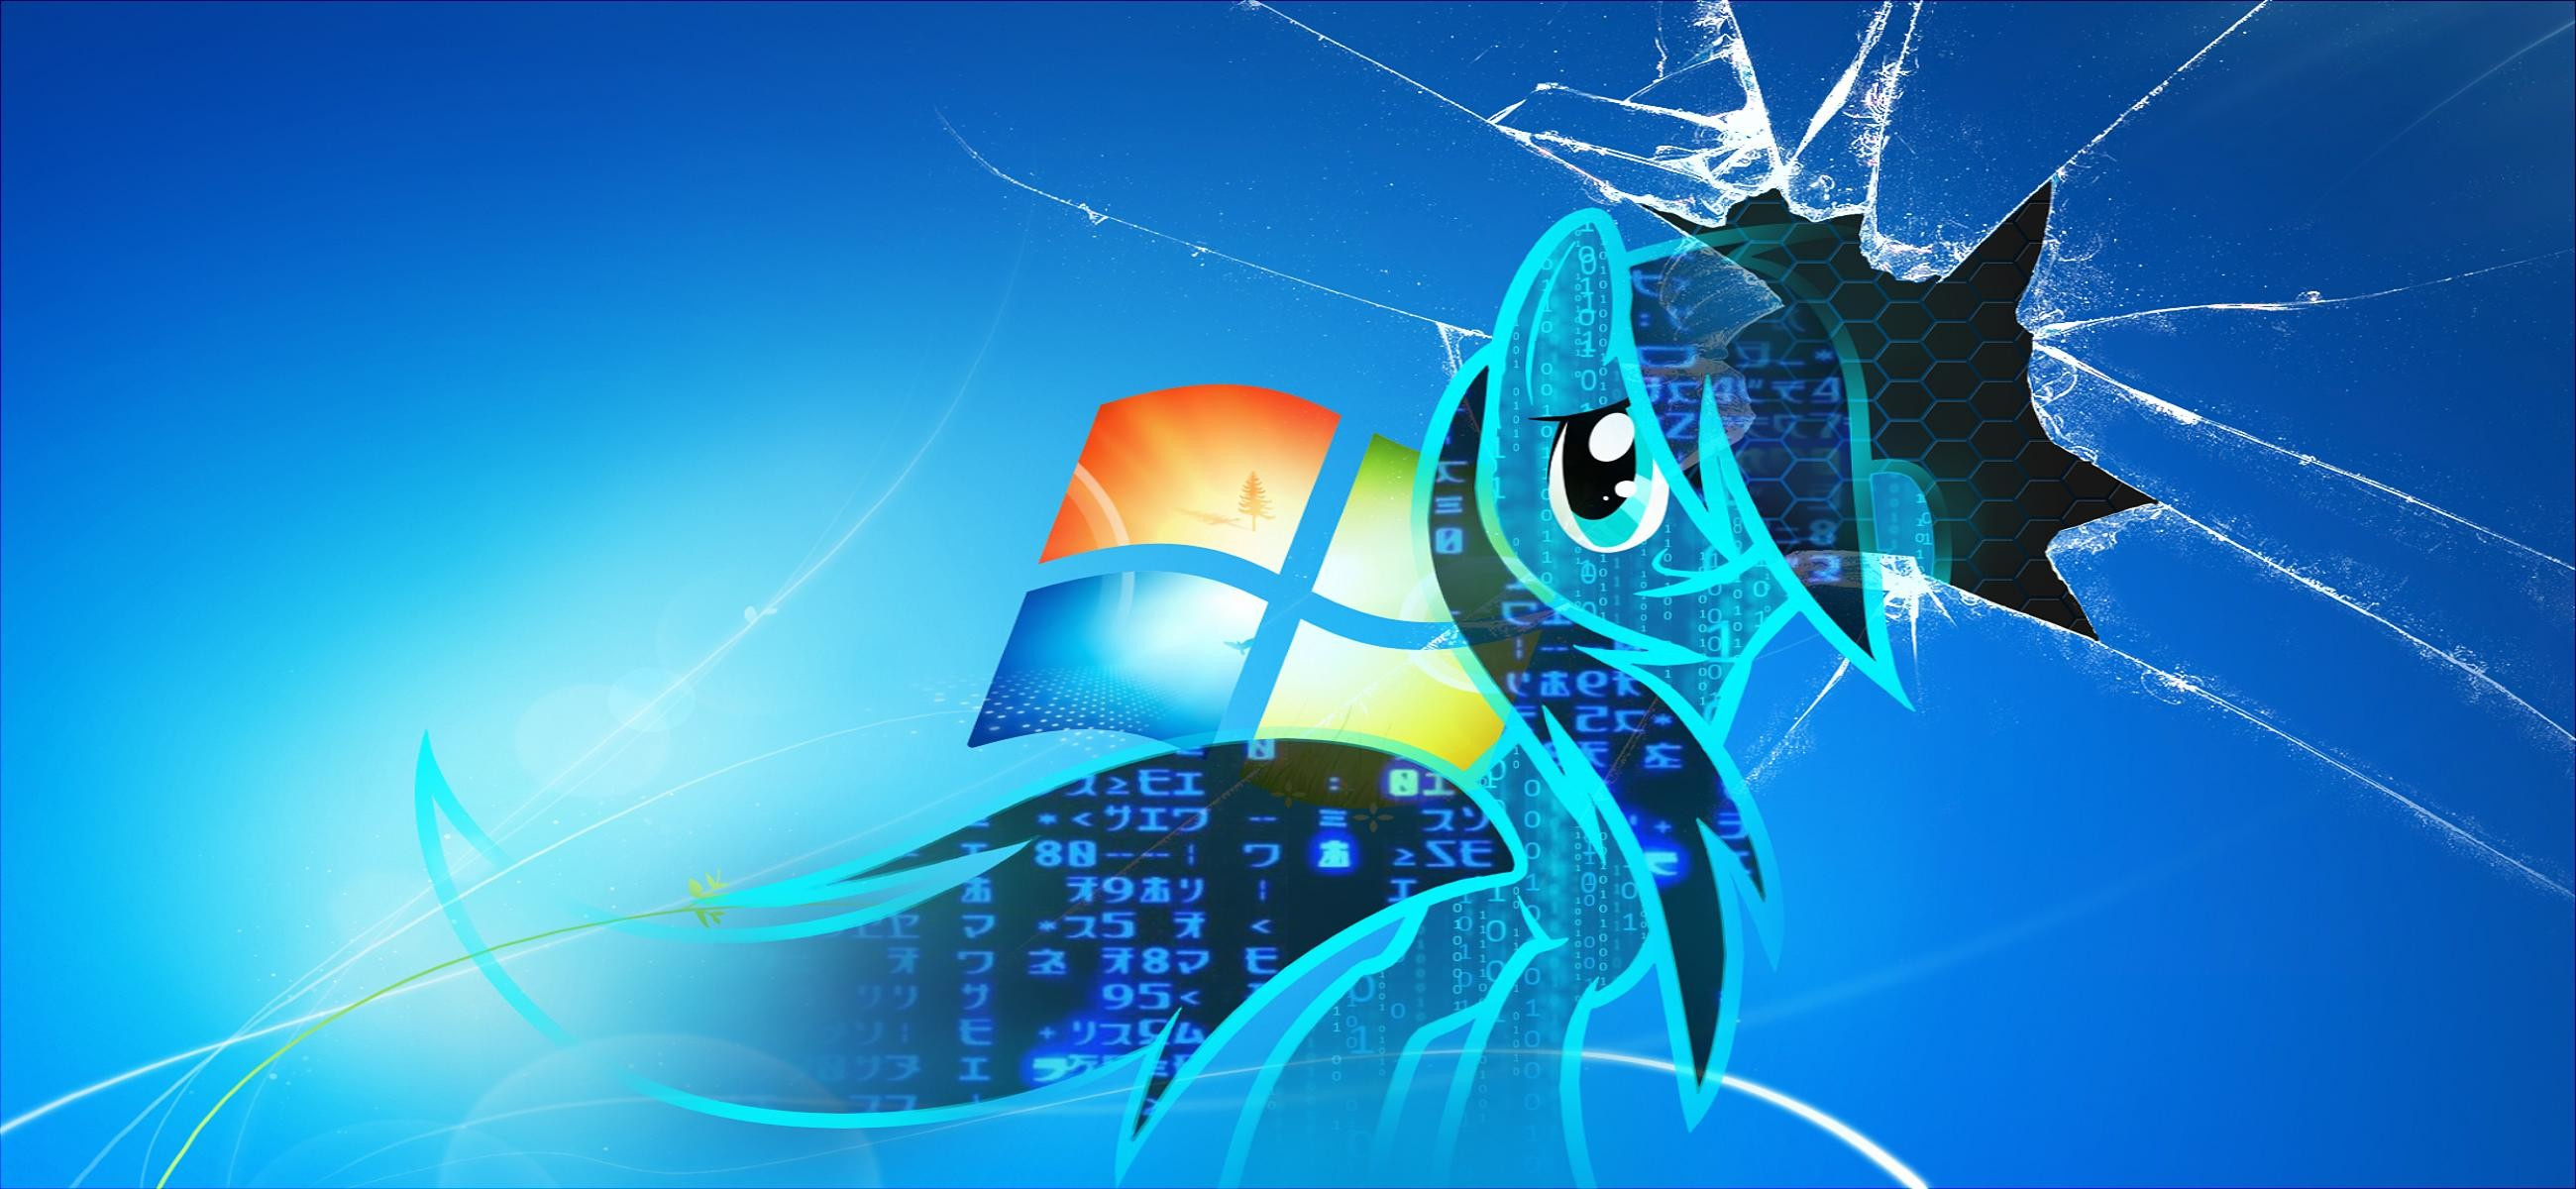 Res: 2600x1200, Cracked Screen Background HD Wallpaper.